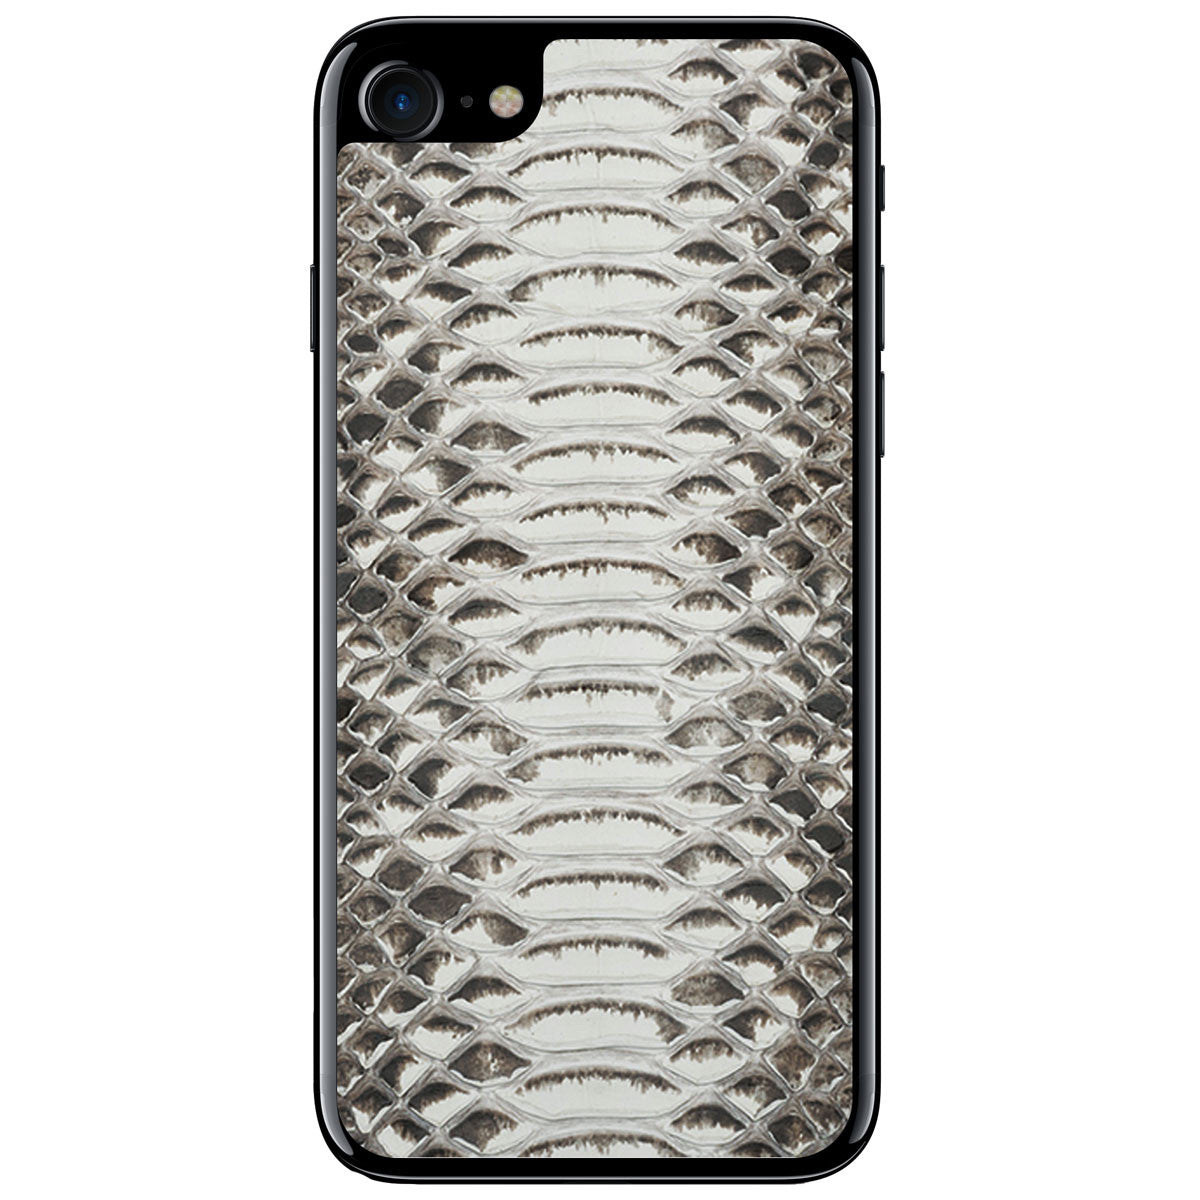 Python iPhone 7 Leather Skin